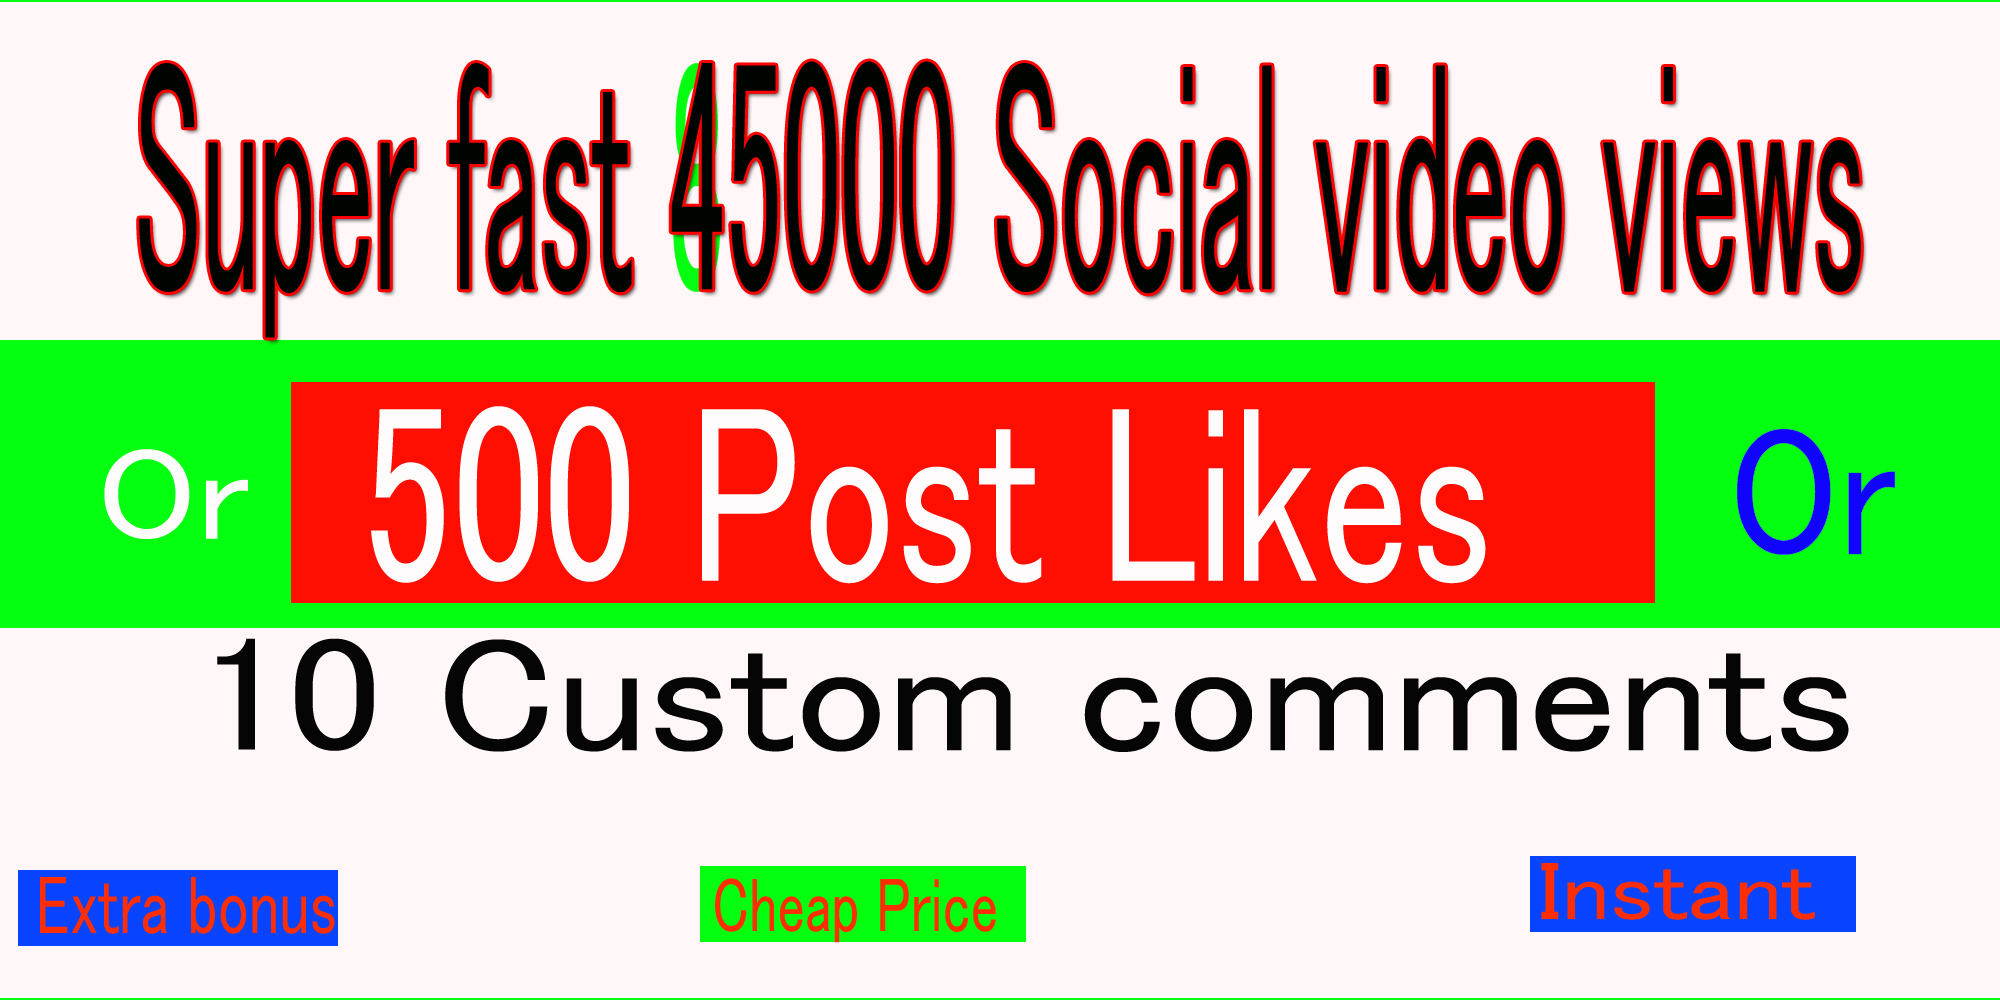 Instant social media music 45k video views or 500+Likes or 10 comments promotion marketing